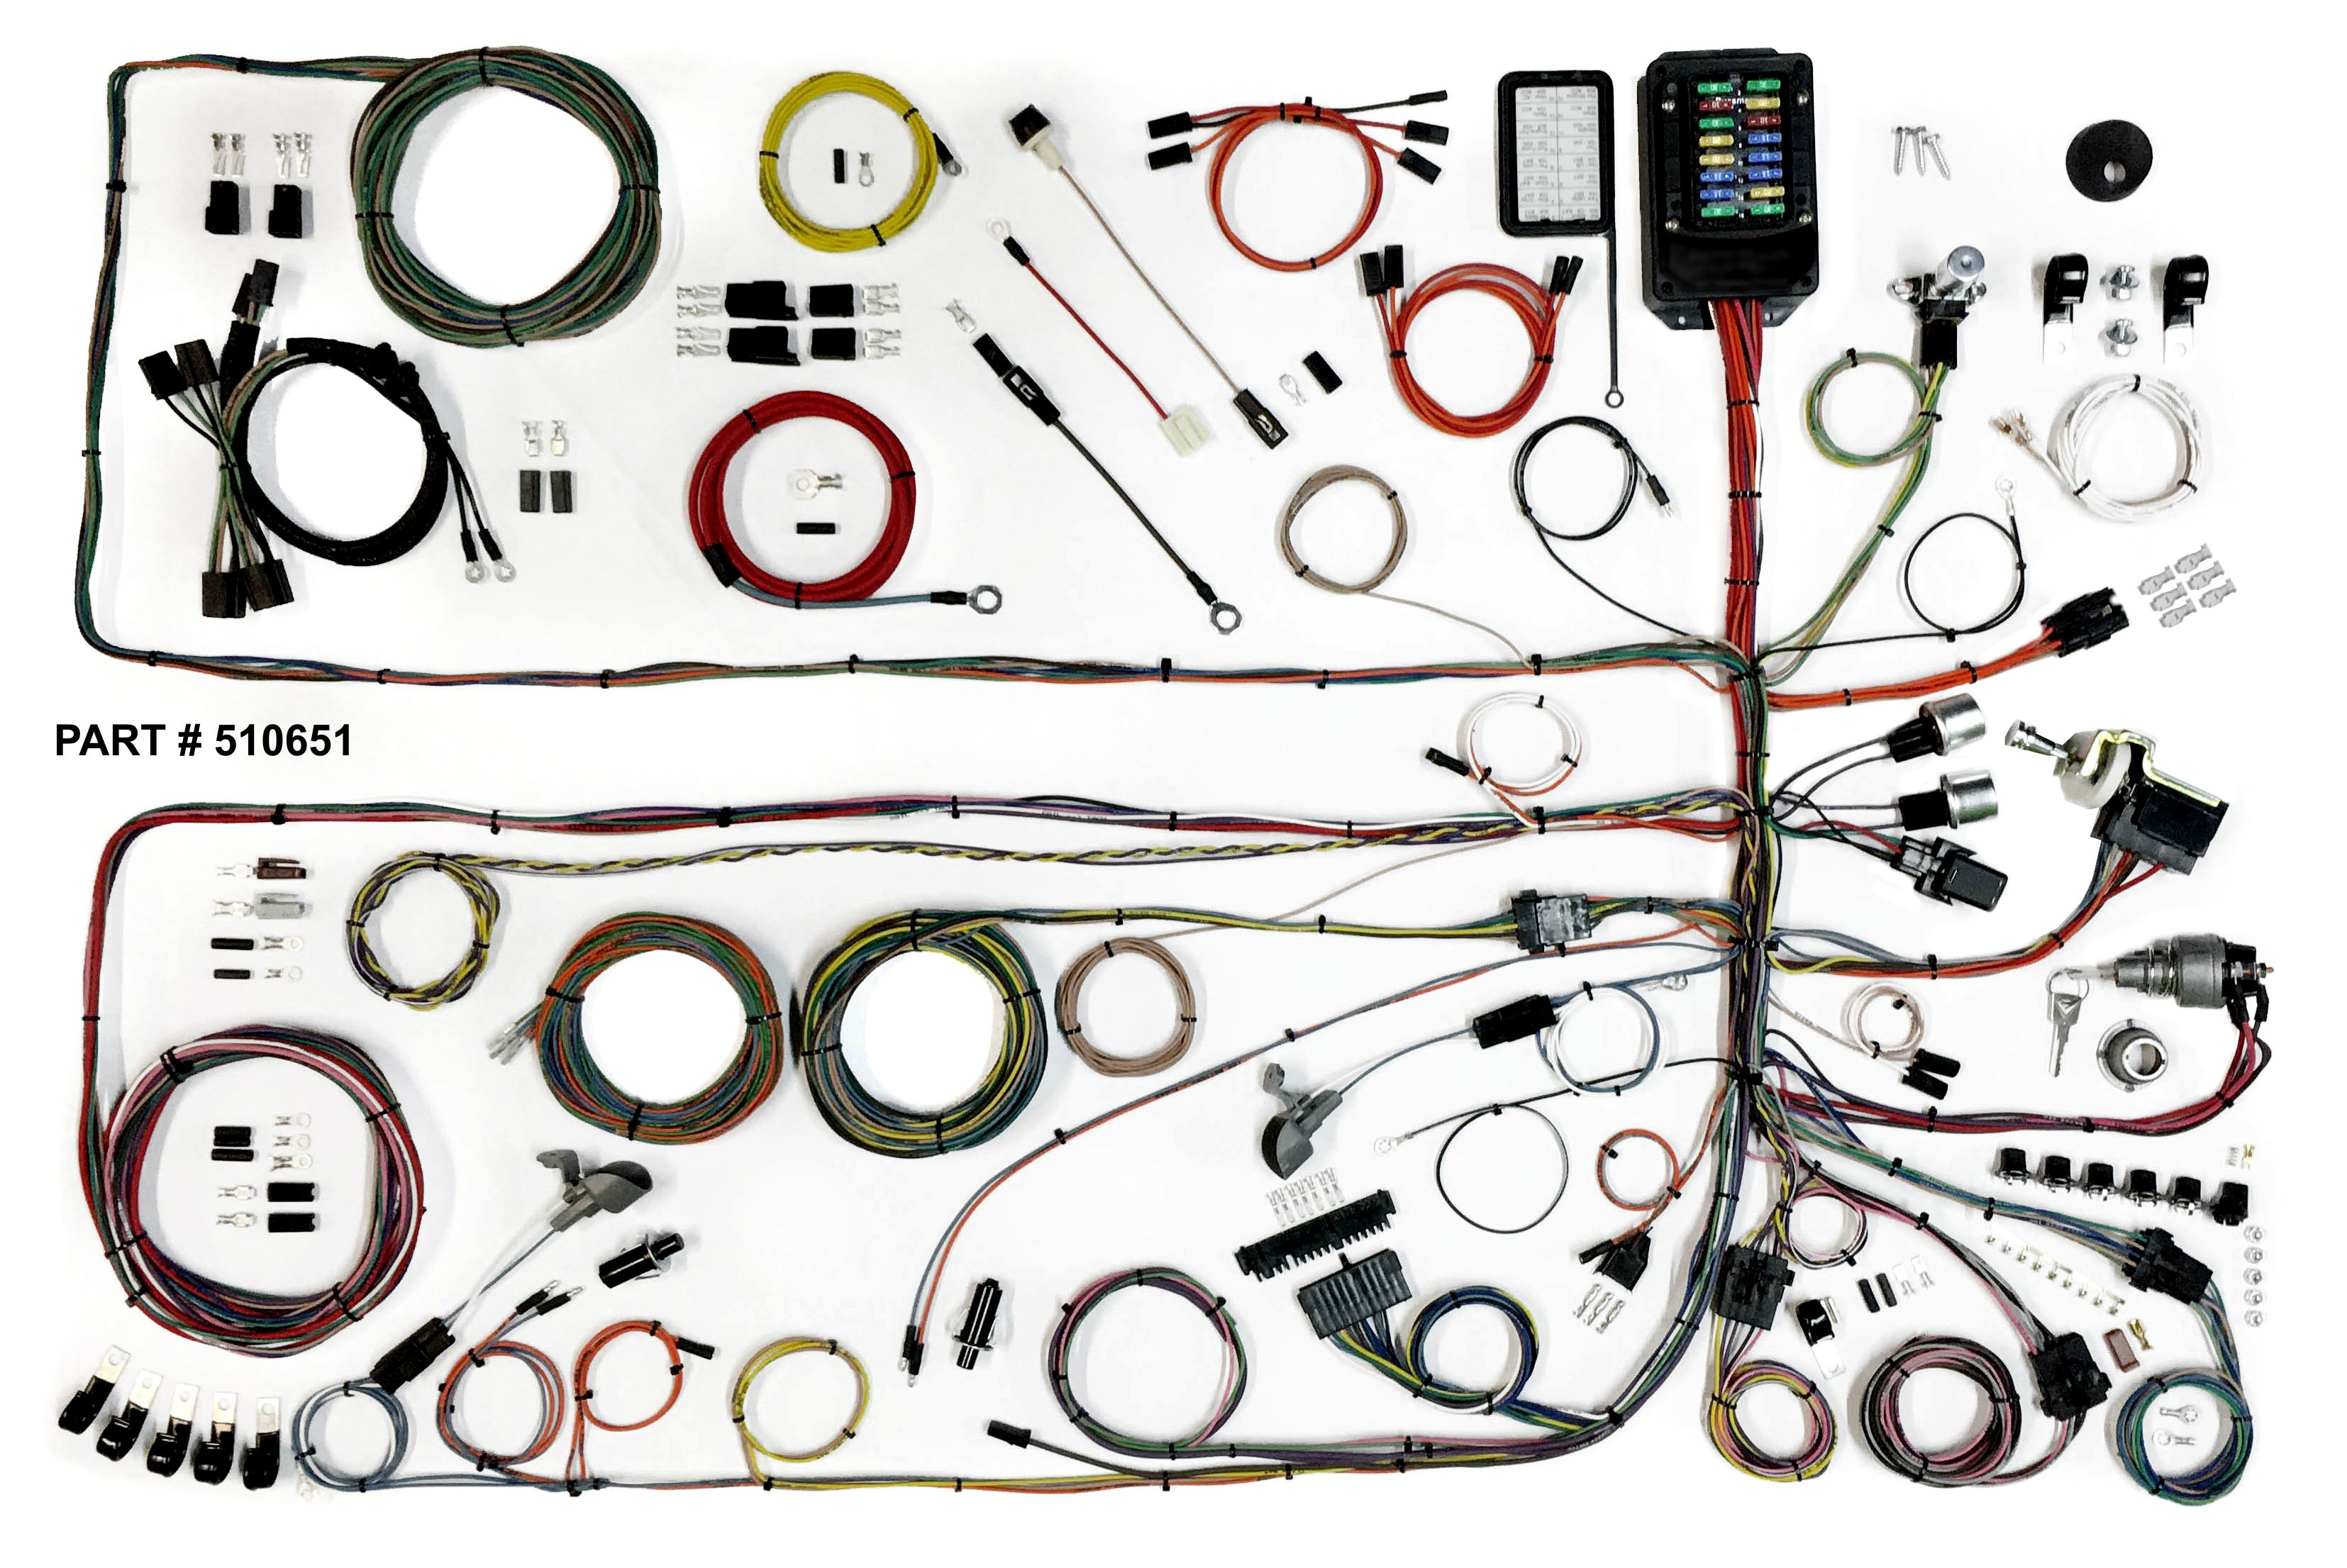 1960 Ford Truck Wiring Harness Reinvent Your Diagram Ignition 1957 Trucks Restomod System Rh Lectriclimited Com F 150